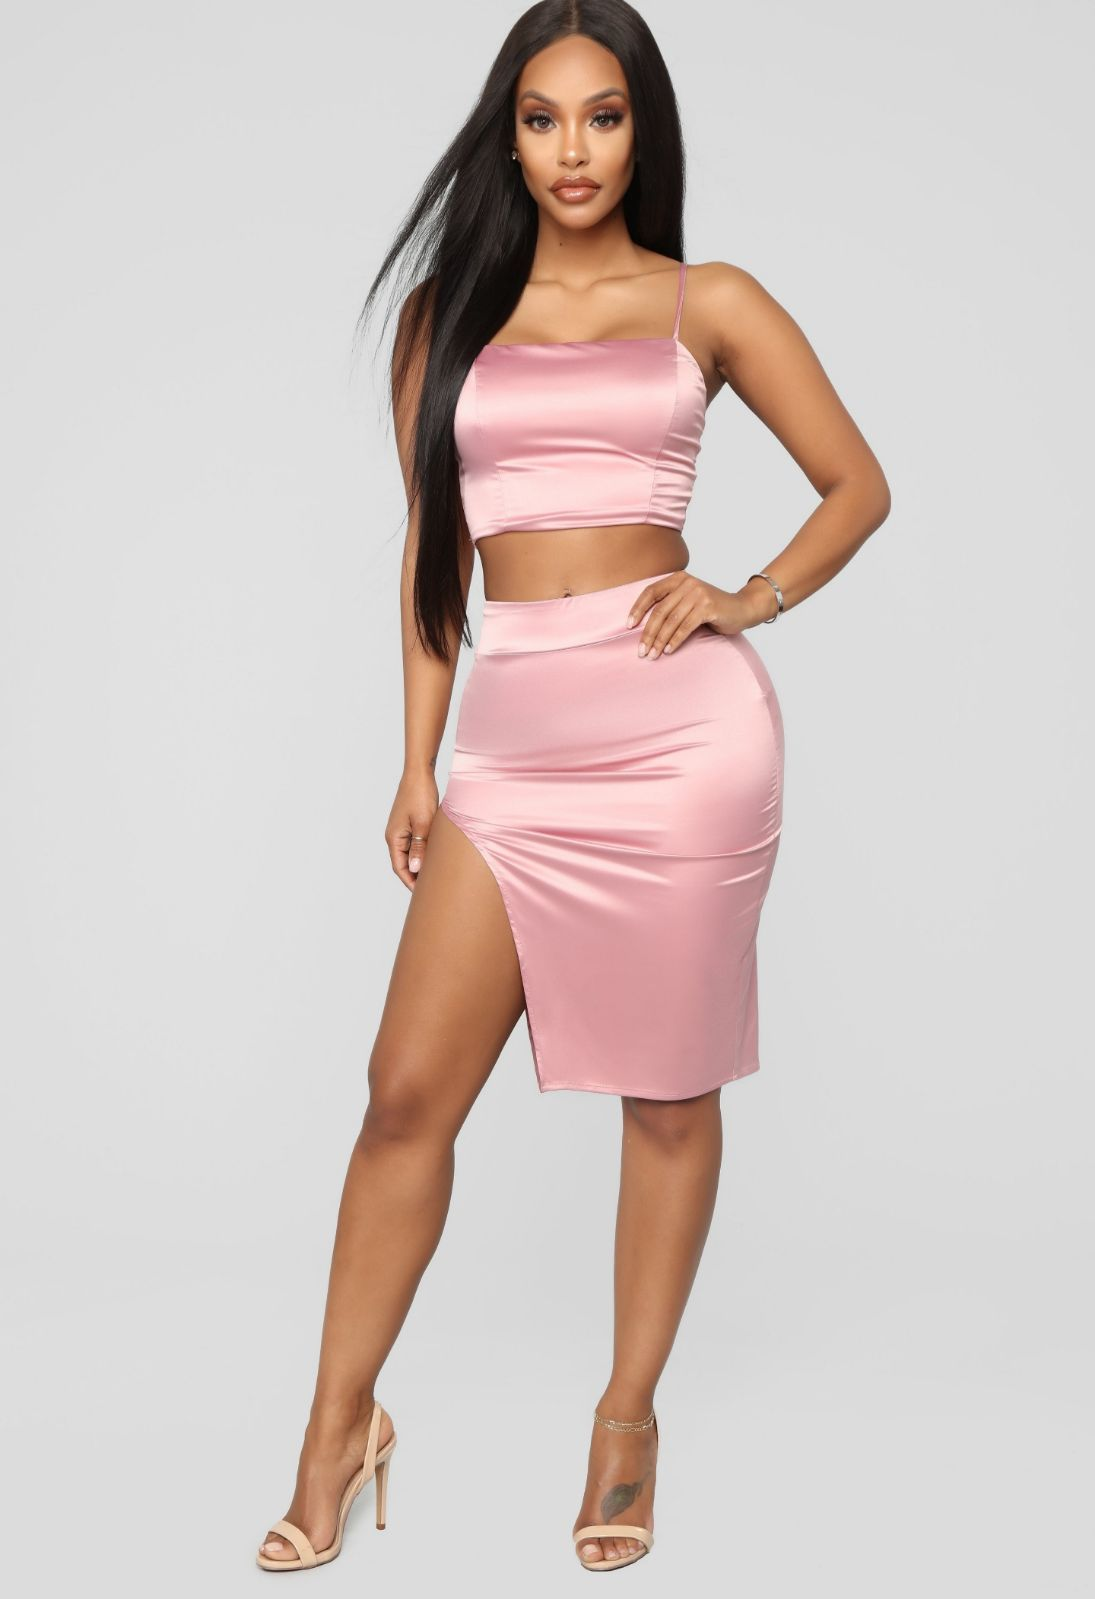 Two Piece Skirt Set This Fashion Nova Two Piece Set Is Perfect For A Nice Night Out On The Town Hugs And Holds You Perfectly In A Satin Skirt Skirts Fashion